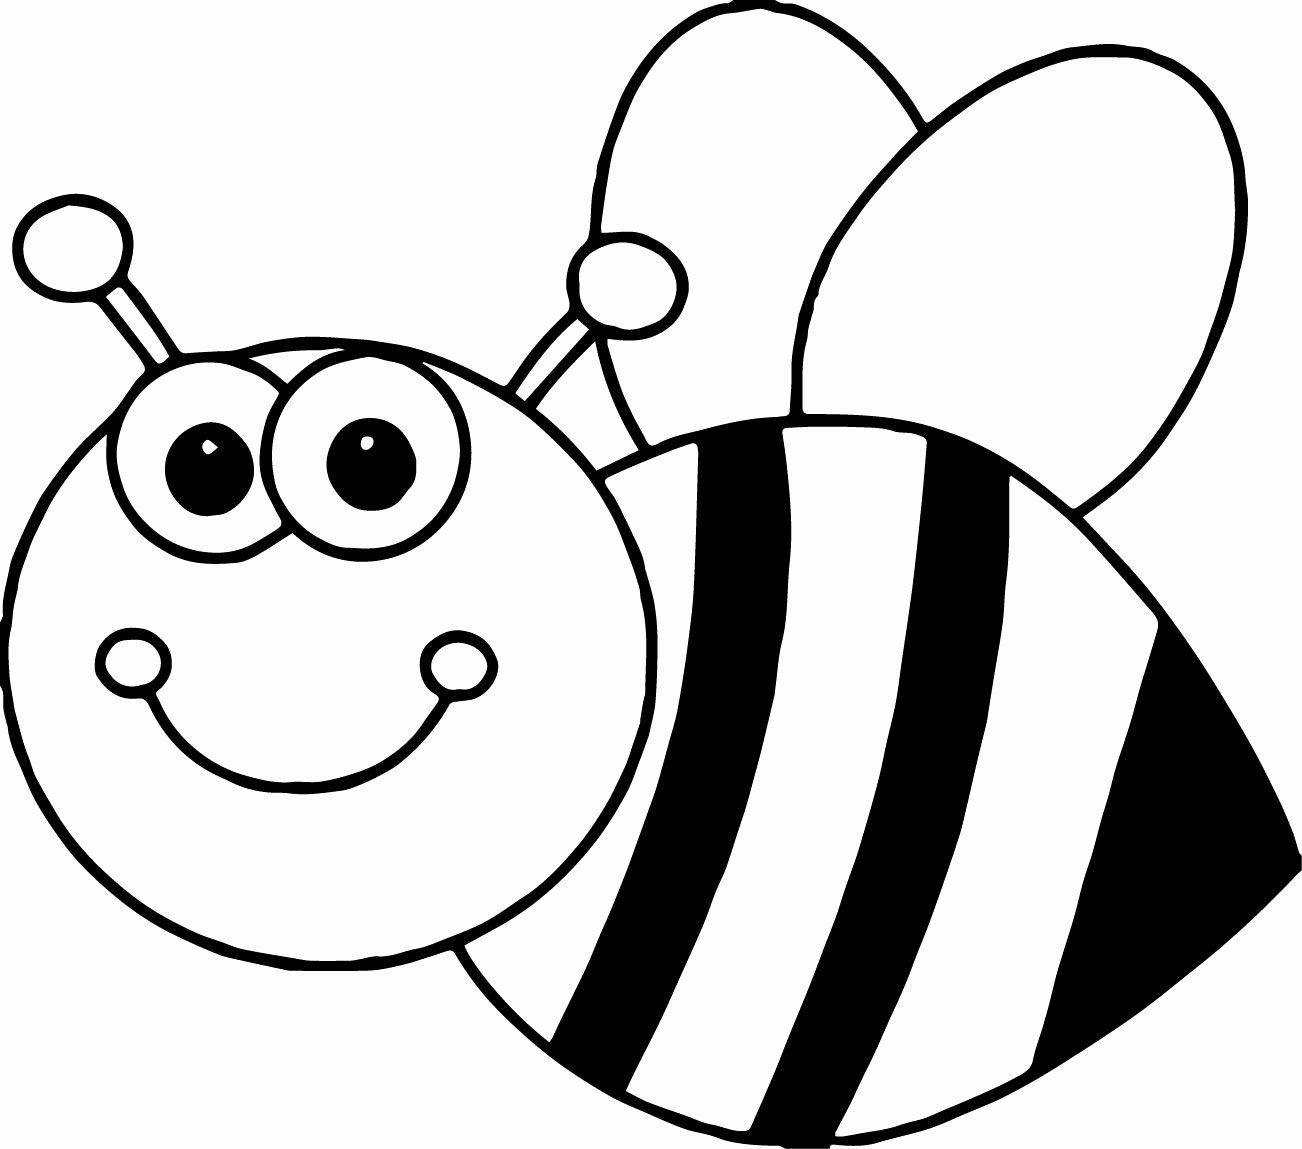 Bumble Bee Coloring Page Beautiful This Is Bumble Bee Coloring Pages Bee Coloring Pages Bee Coloring Pages Bee Printables Bee Template